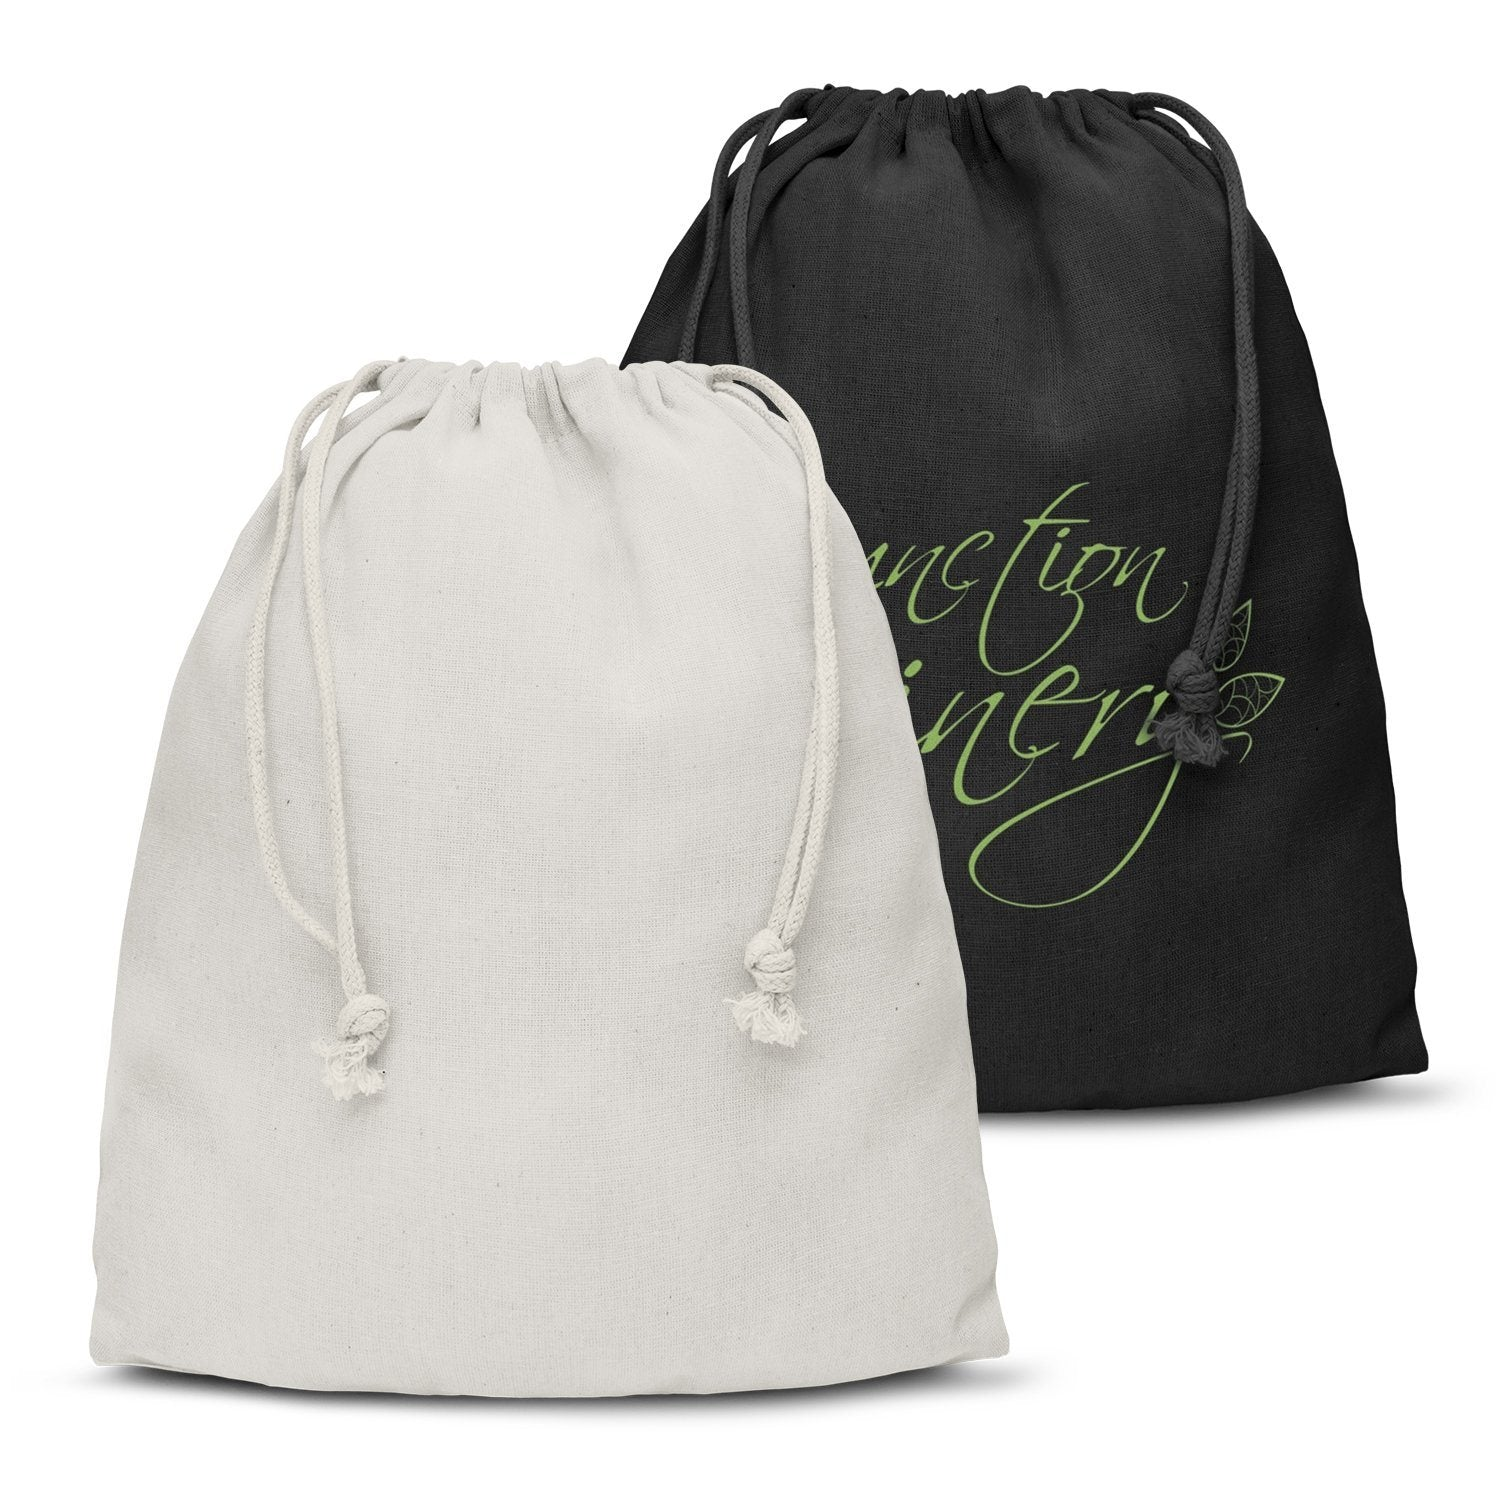 Stock Cotton Gift Bag-Large(SCB-27T) - greenpac.com.au